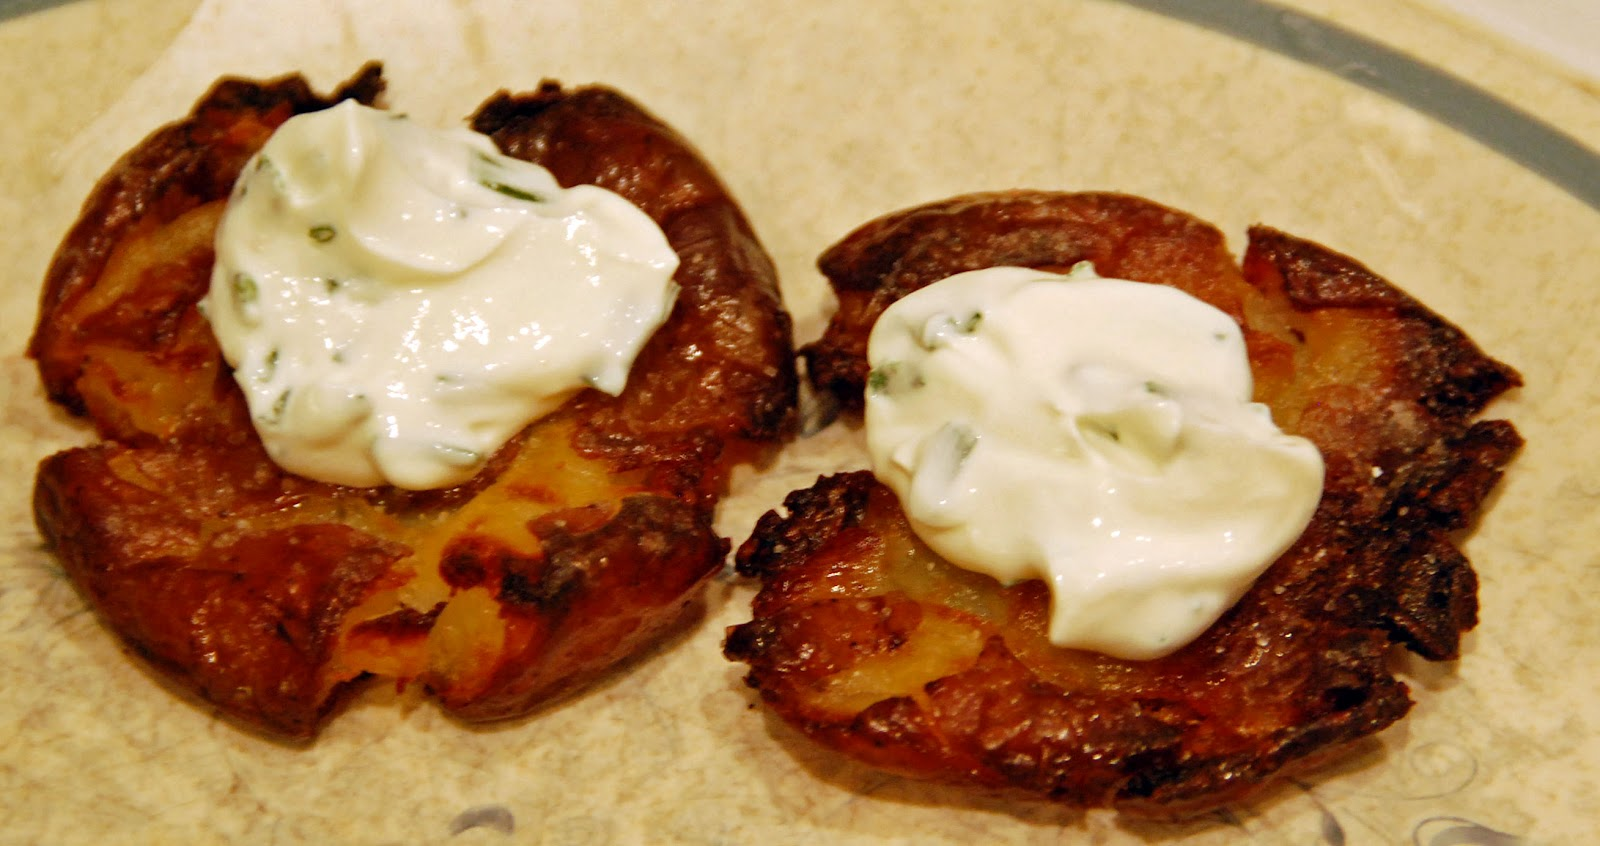 Crispy Smashed Roasted Potatoes with Chive Sour Cream